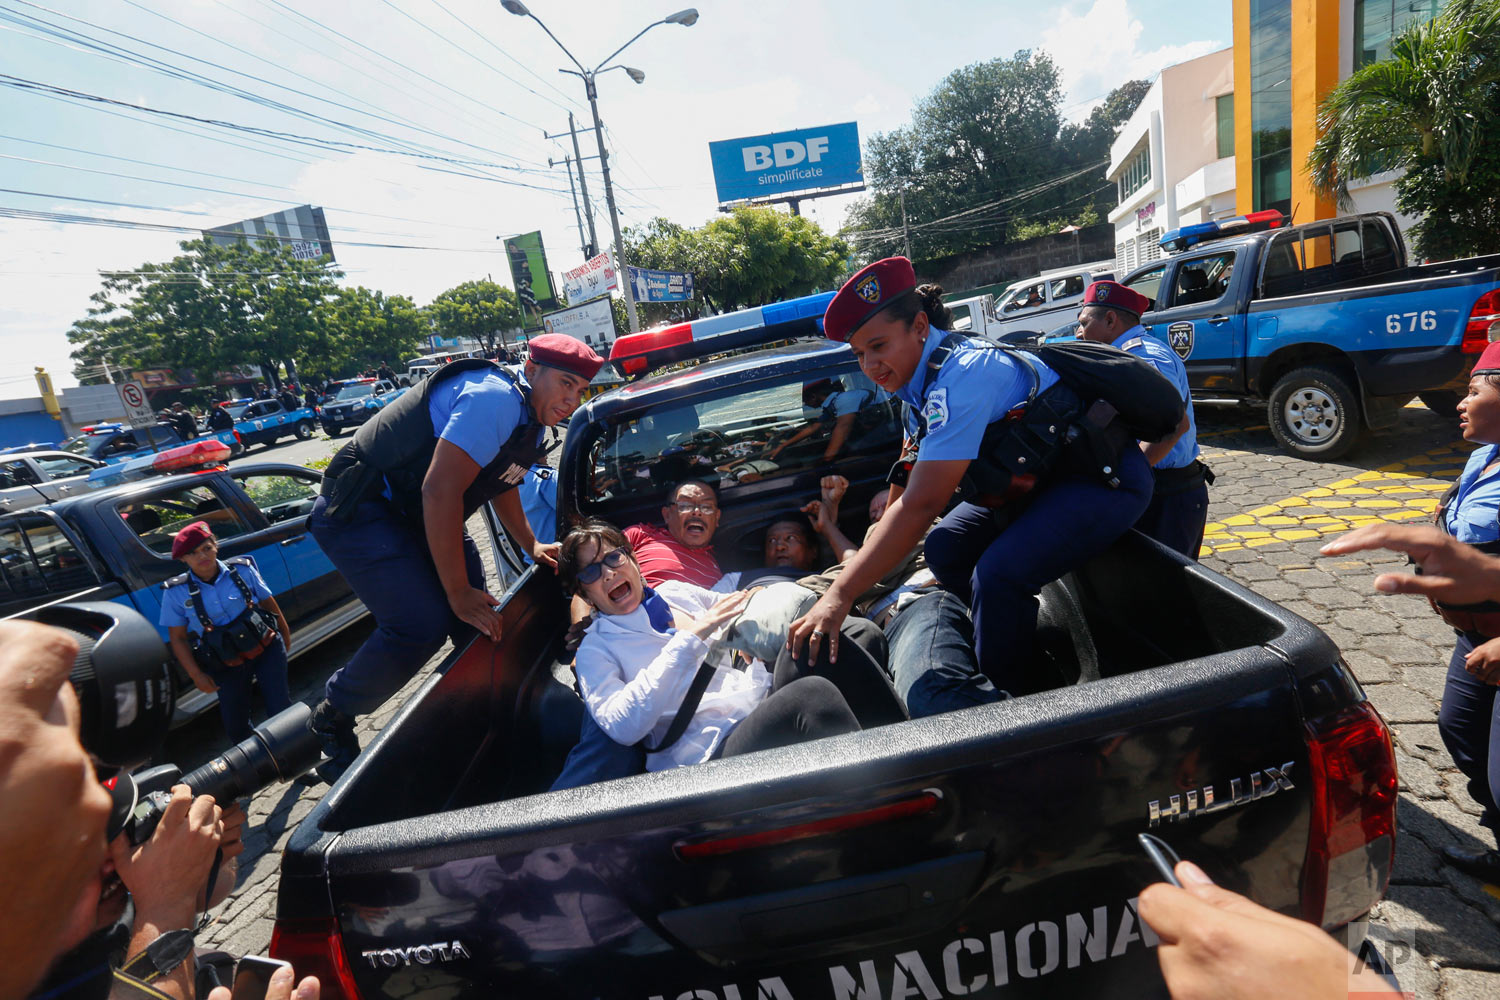 """Anti-government protesters are arrested and taken away by police as security forces disrupt their march, coined """"United for Freedom,"""" in Managua, Nicaragua, Oct. 14, 2018. Anti-government protests calling for President Daniel Ortega's resignation are ongoing since April, triggered by a since-rescinded government plan to cut social security pensions. Ortega said opponents will have to wait until his term ends in 2021. (AP Photo/Alfredo Zuniga)"""